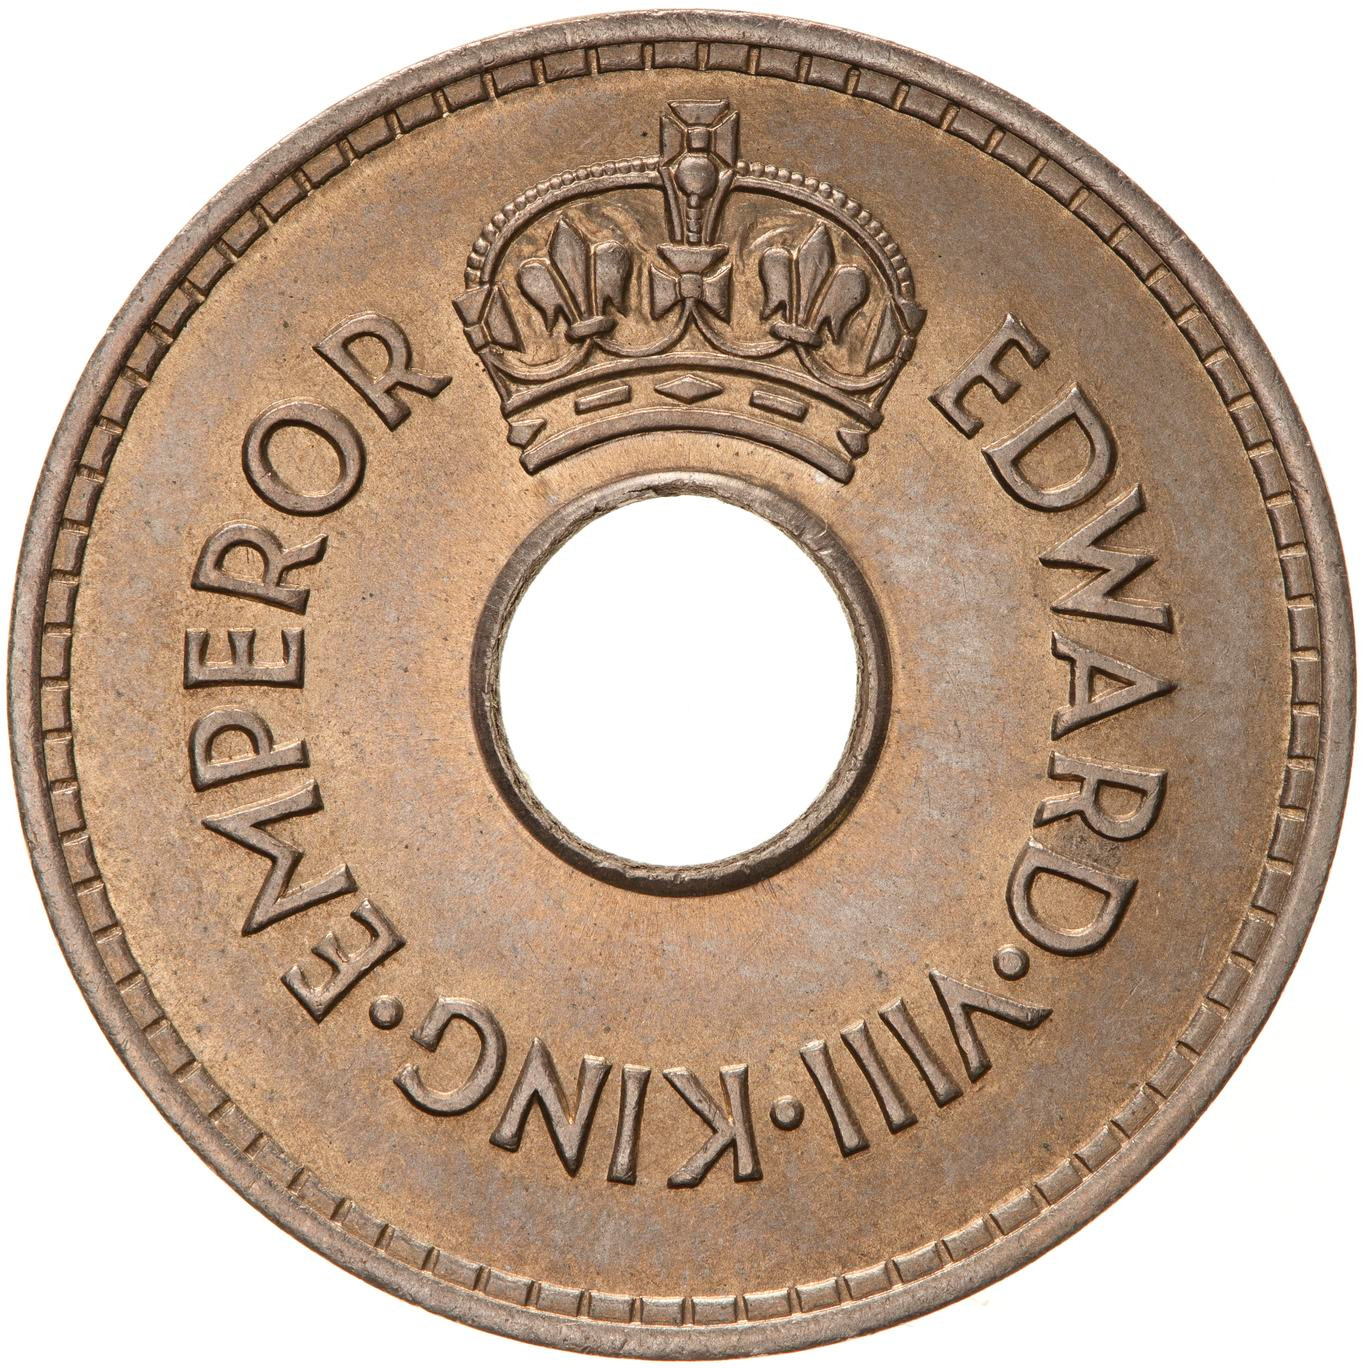 Penny 1936 (King Edward VIII): Photo Coin - 1 Penny, Fiji, 1936